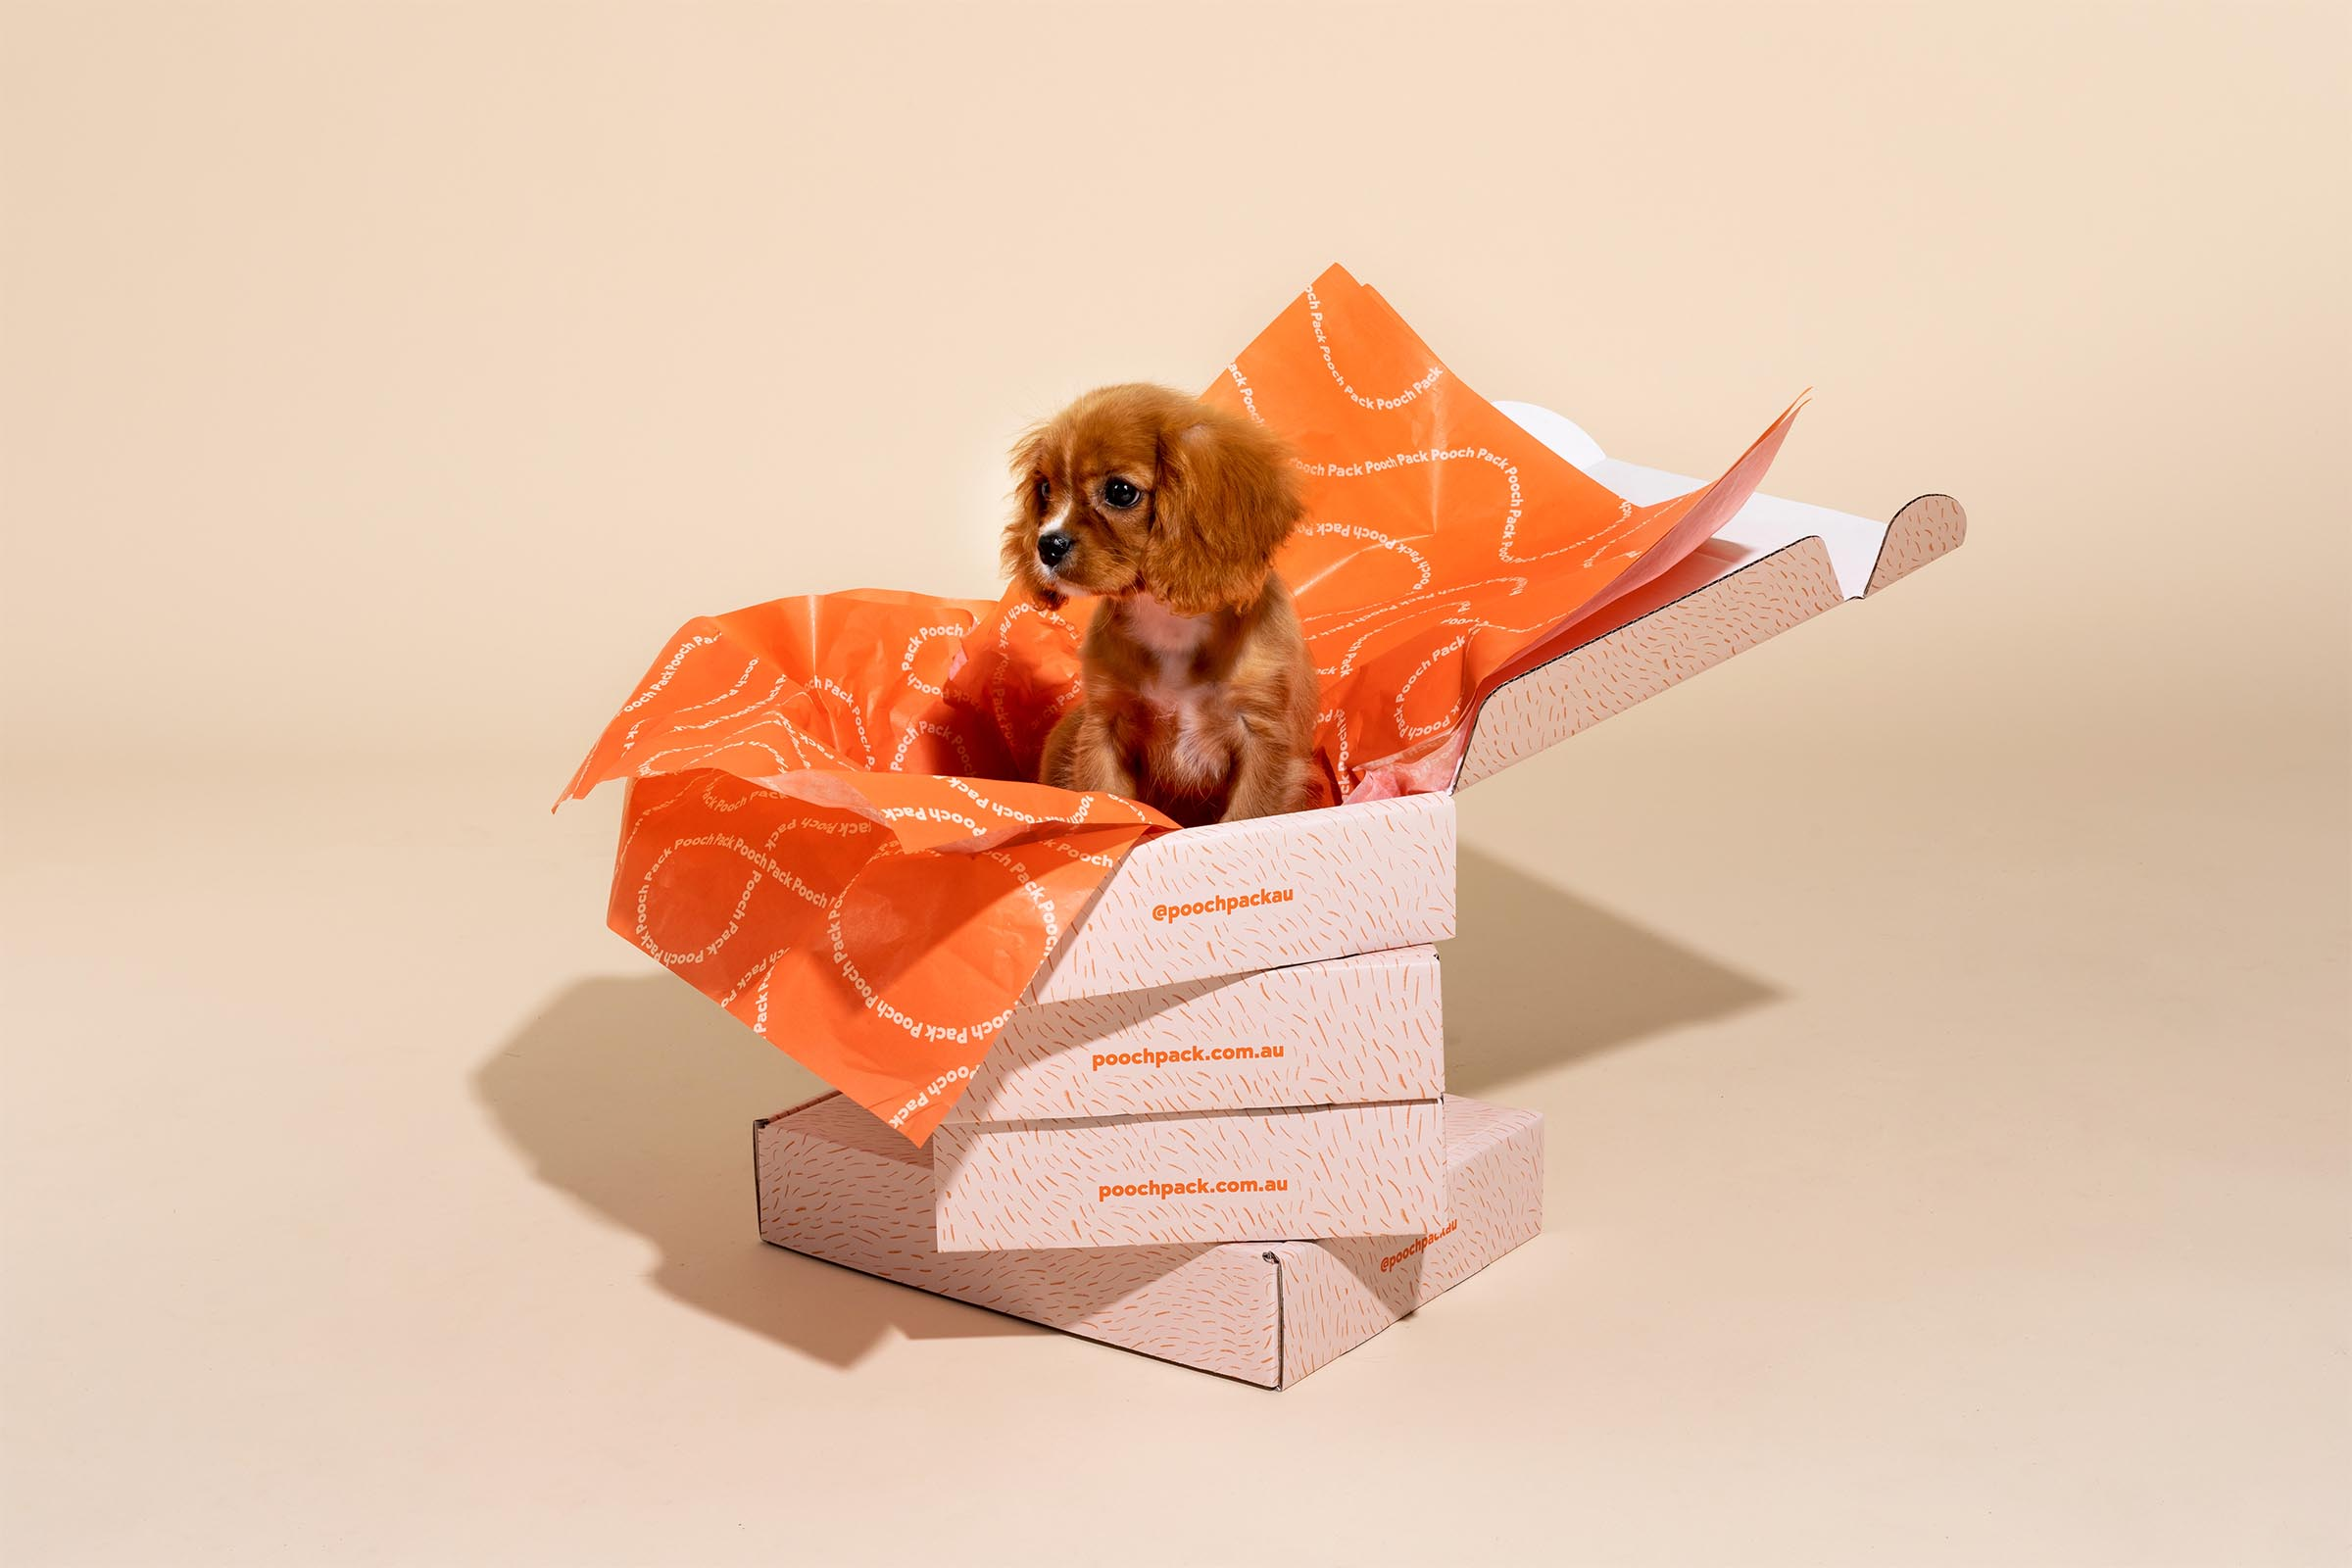 Pooch packaging design